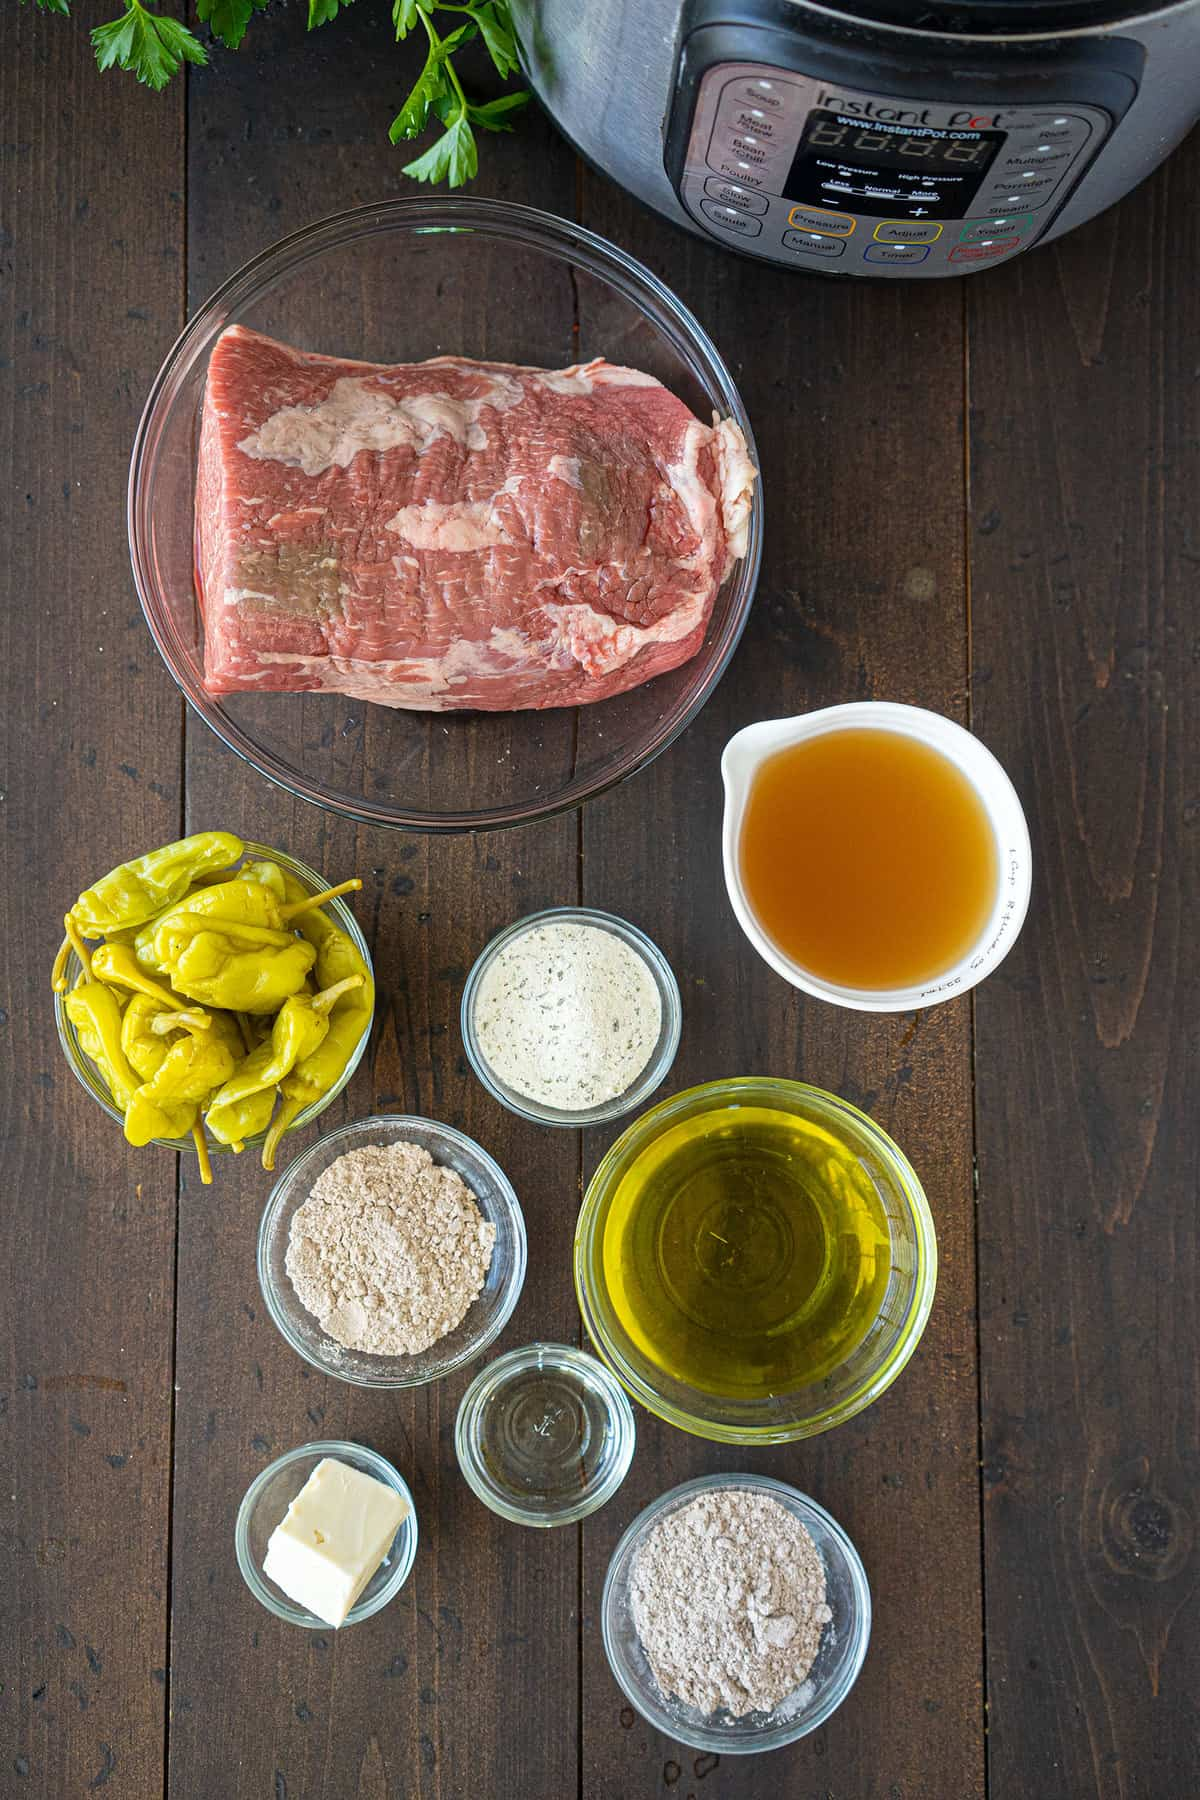 The ingredients for a Mississippi pot roast, laid out in individual bowls next to an Instant Pot